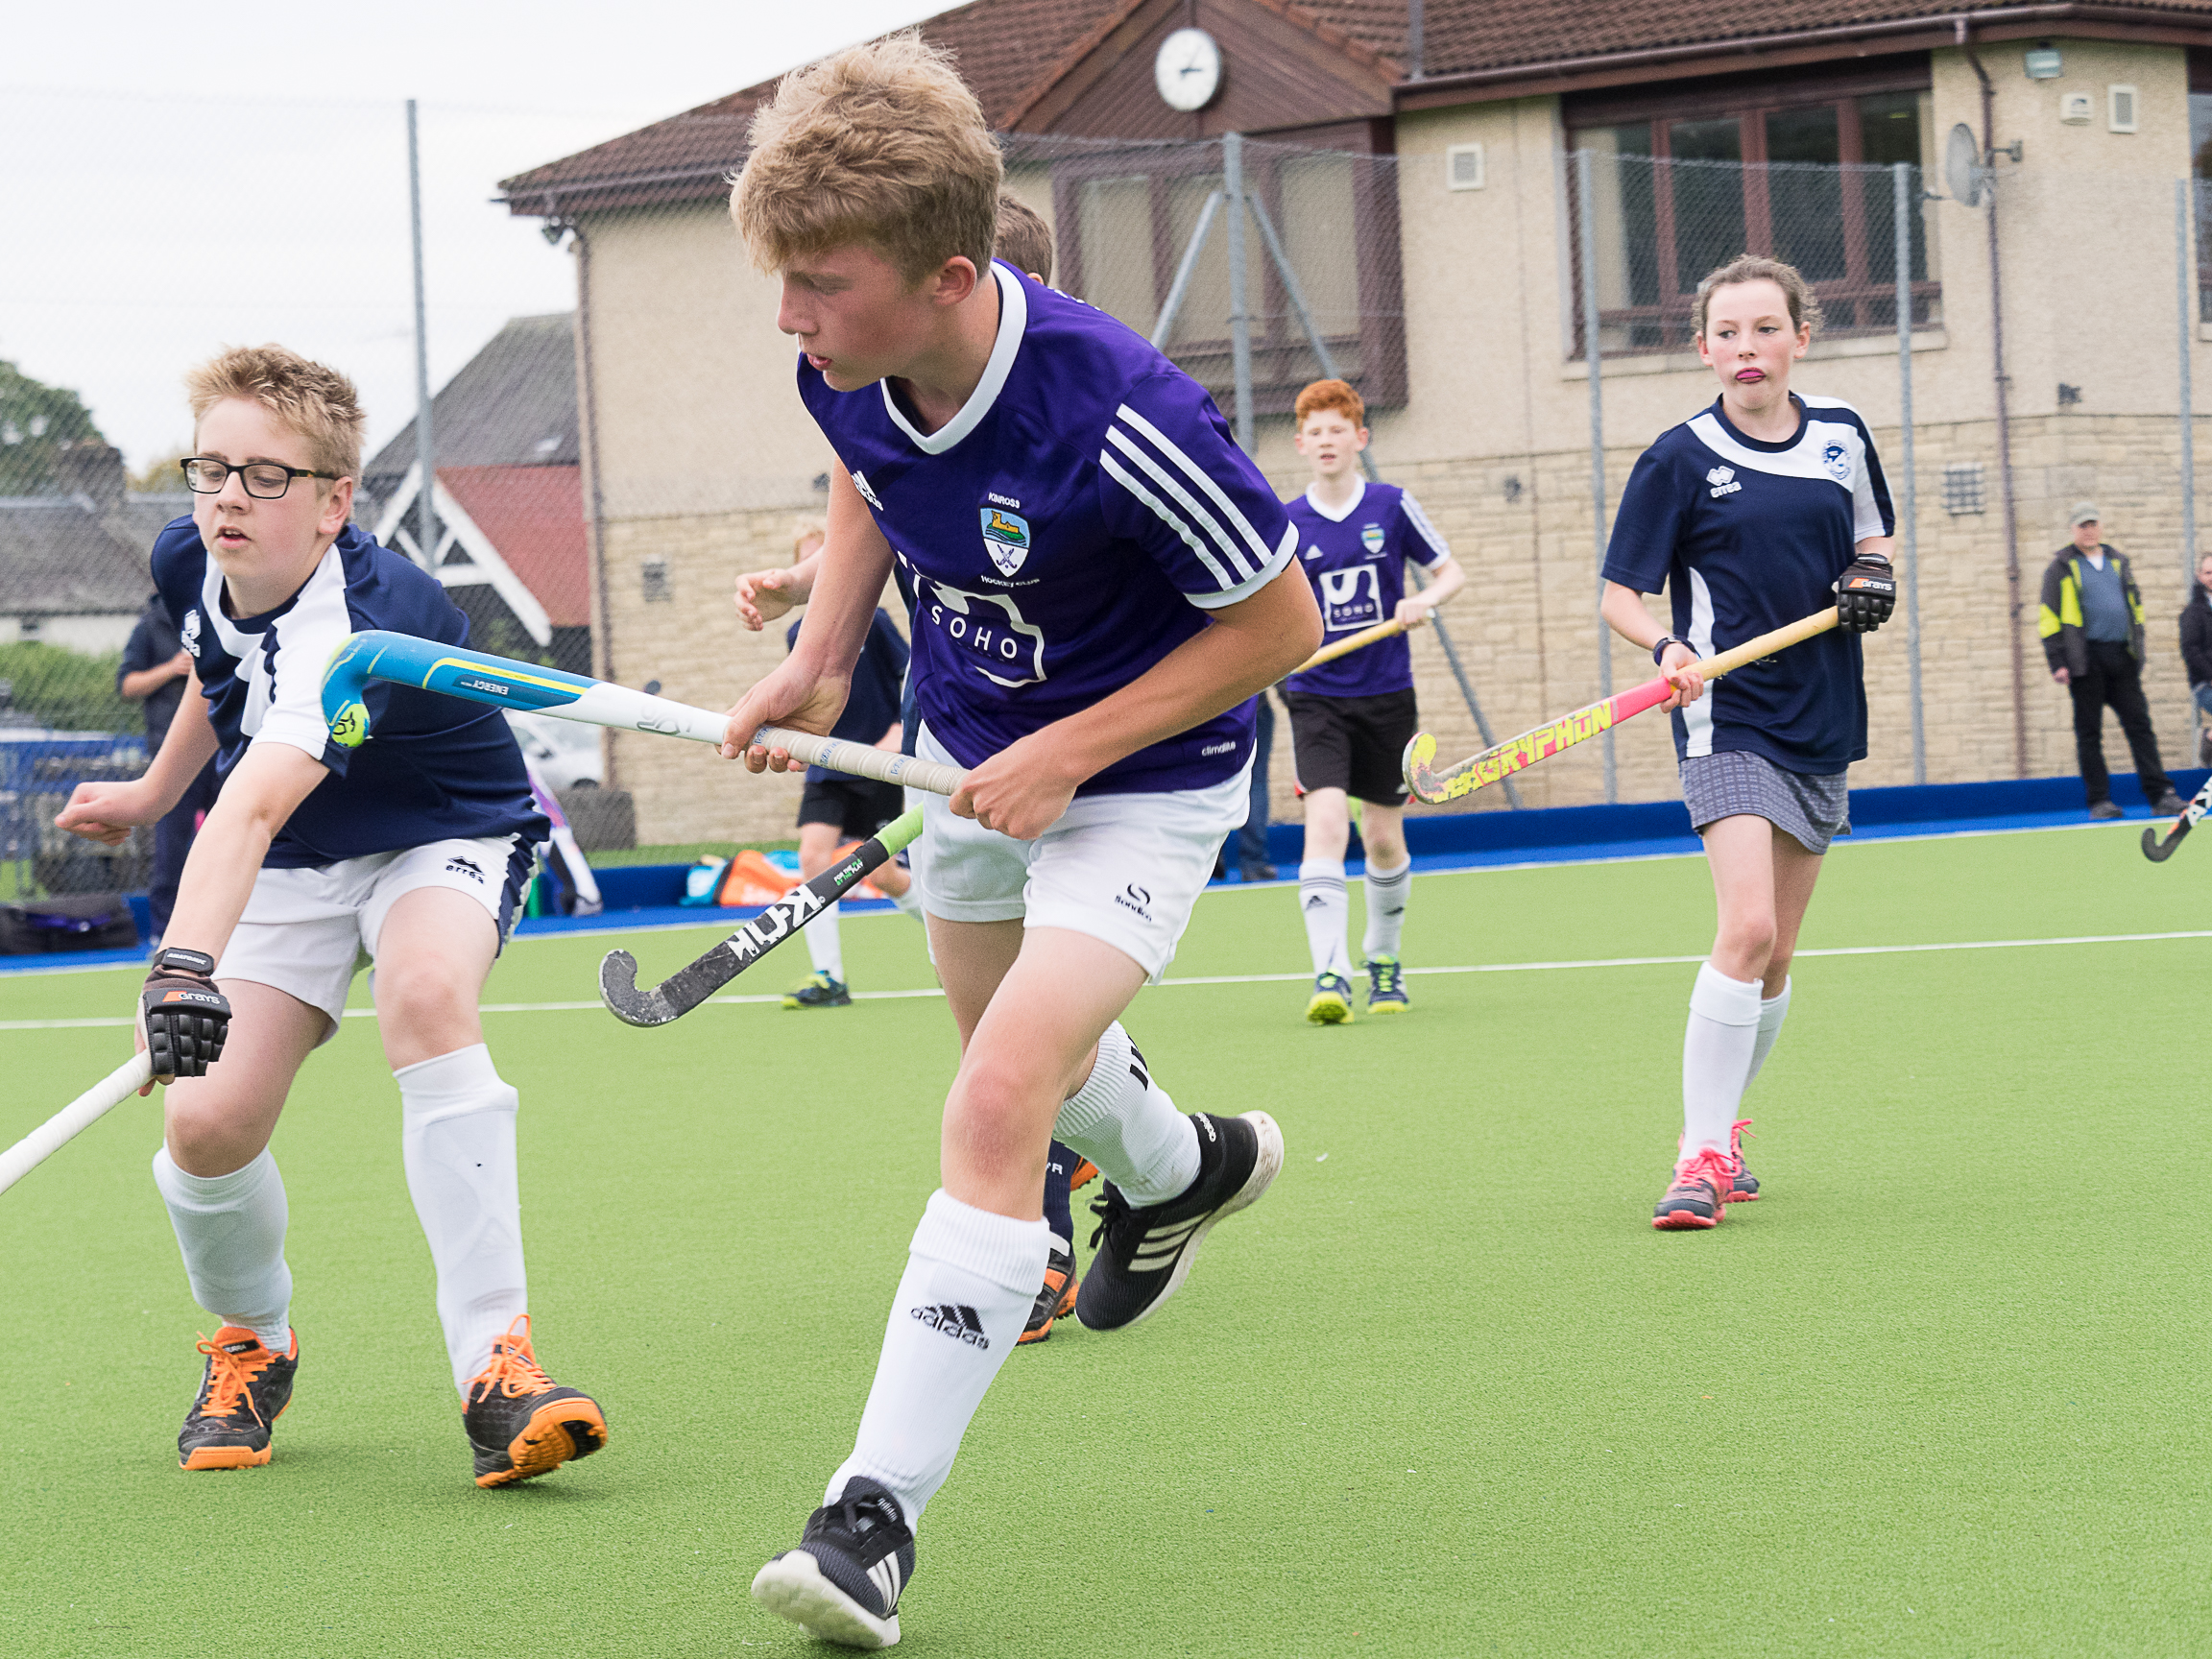 Hockey Kinross Sept 24th-70.jpg